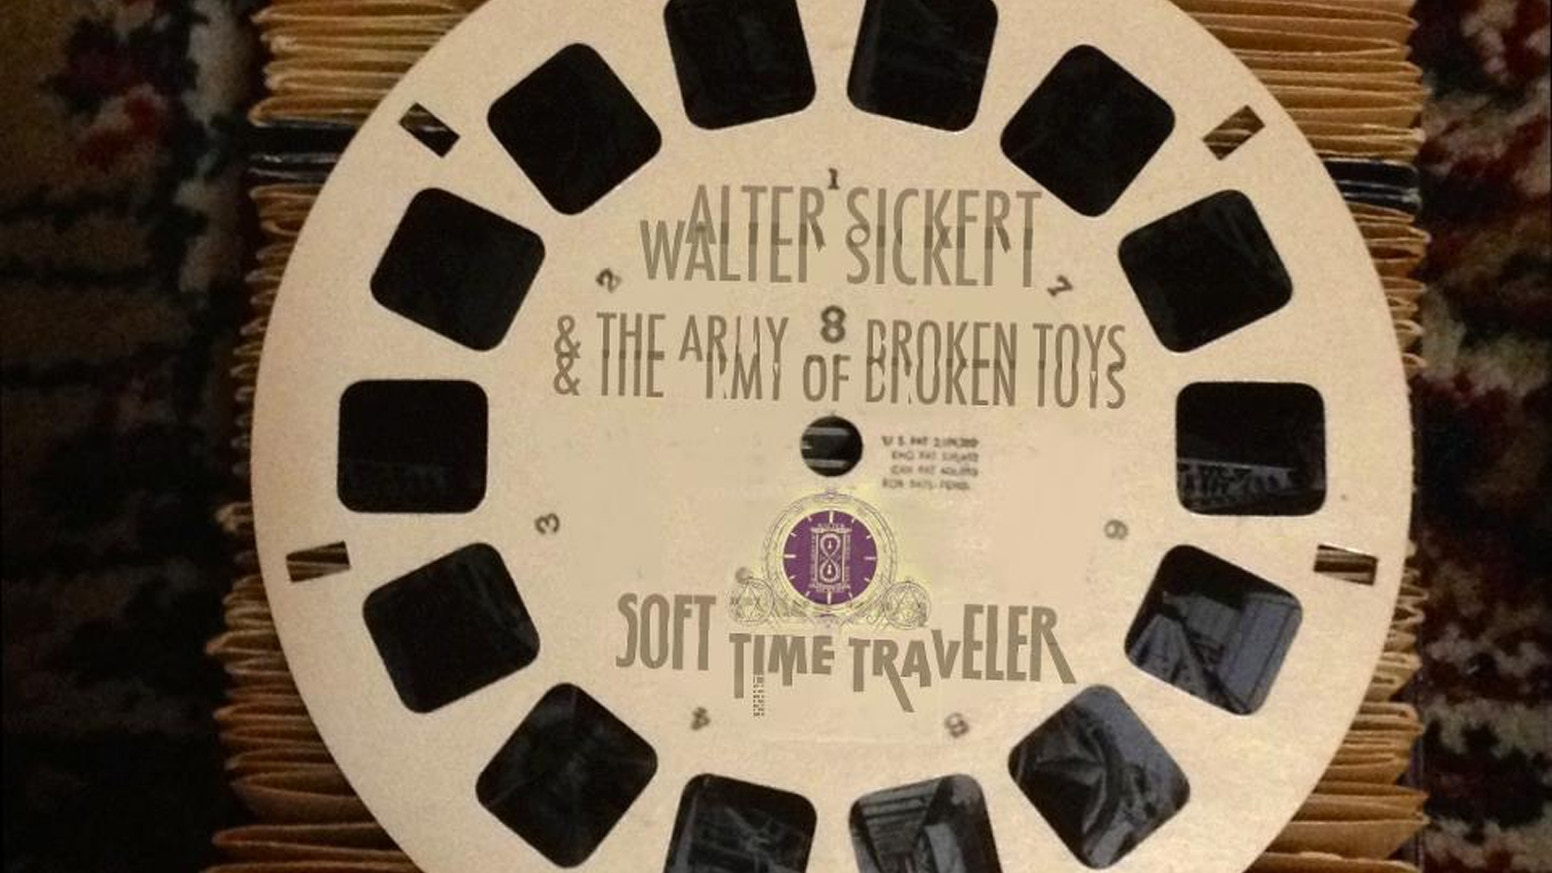 Walter Sickert & the ARmy of BRoken TOys are putting out an album. Pre-order it & get more info on the MUSIC, Videos & other goodies!